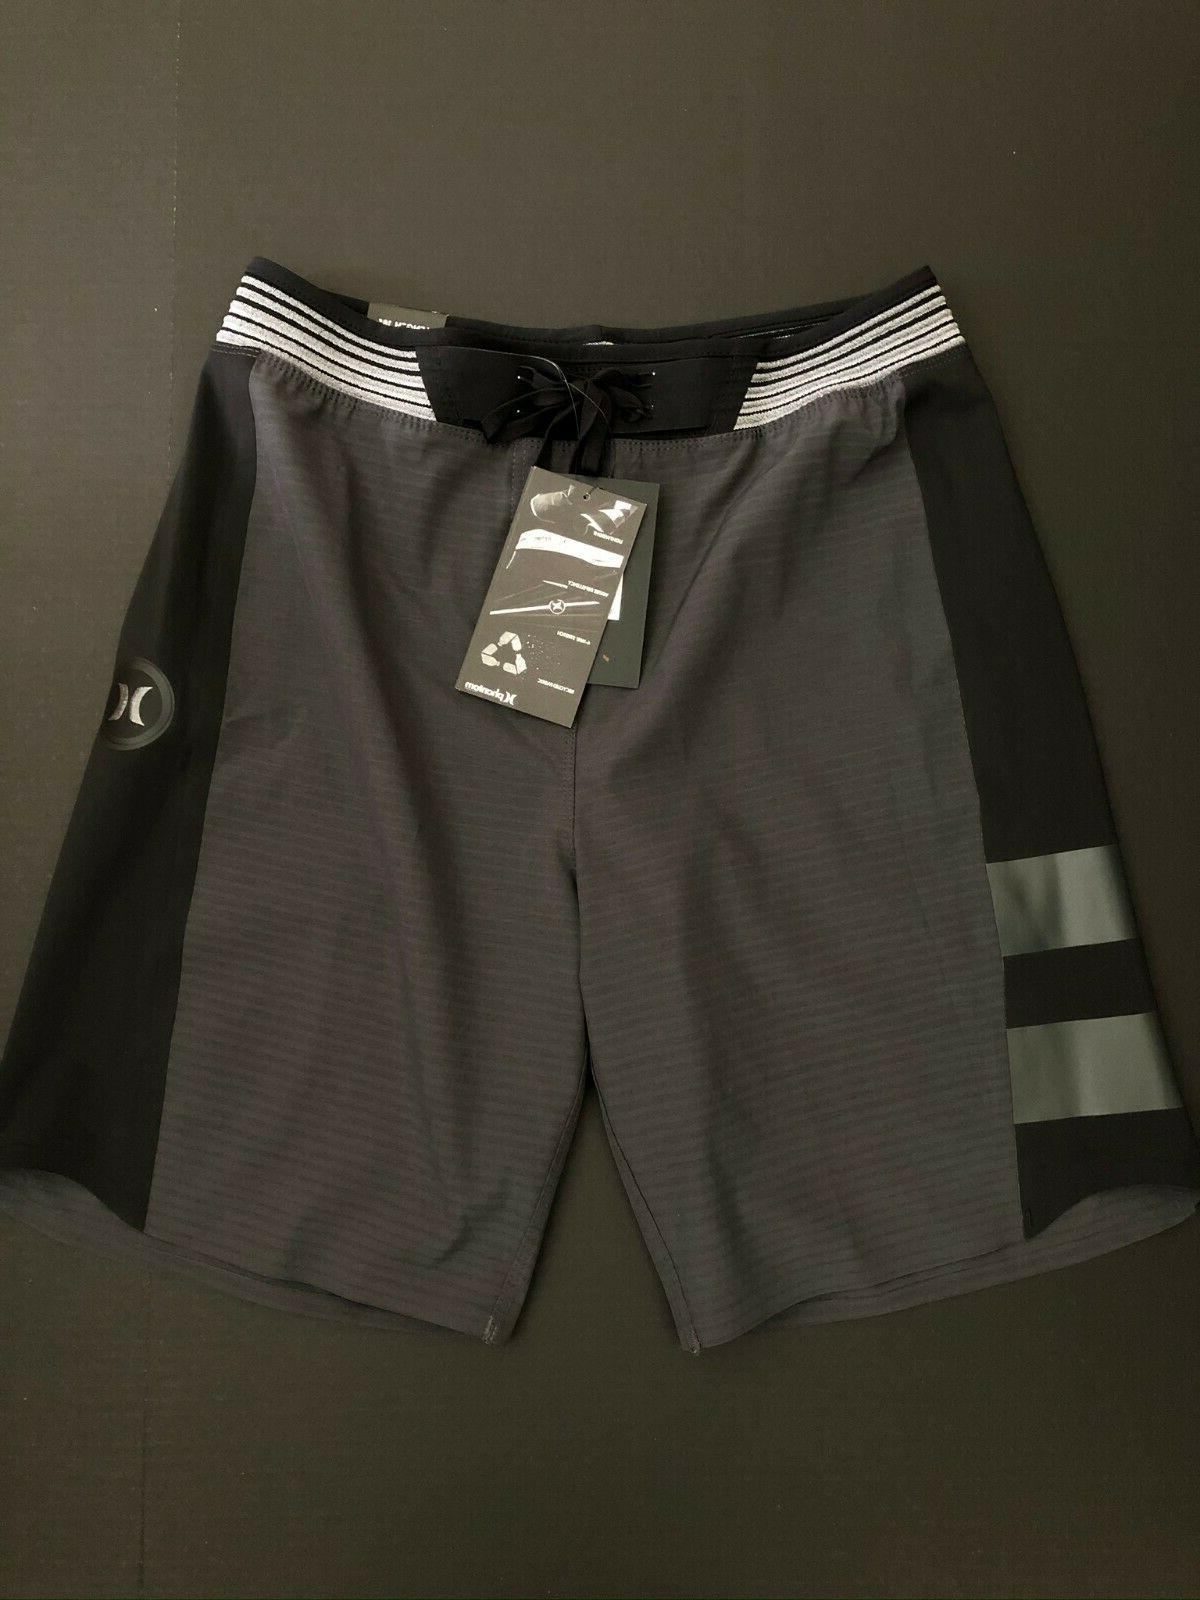 $150 Hurley Men's Sz 30 Elite Stripe